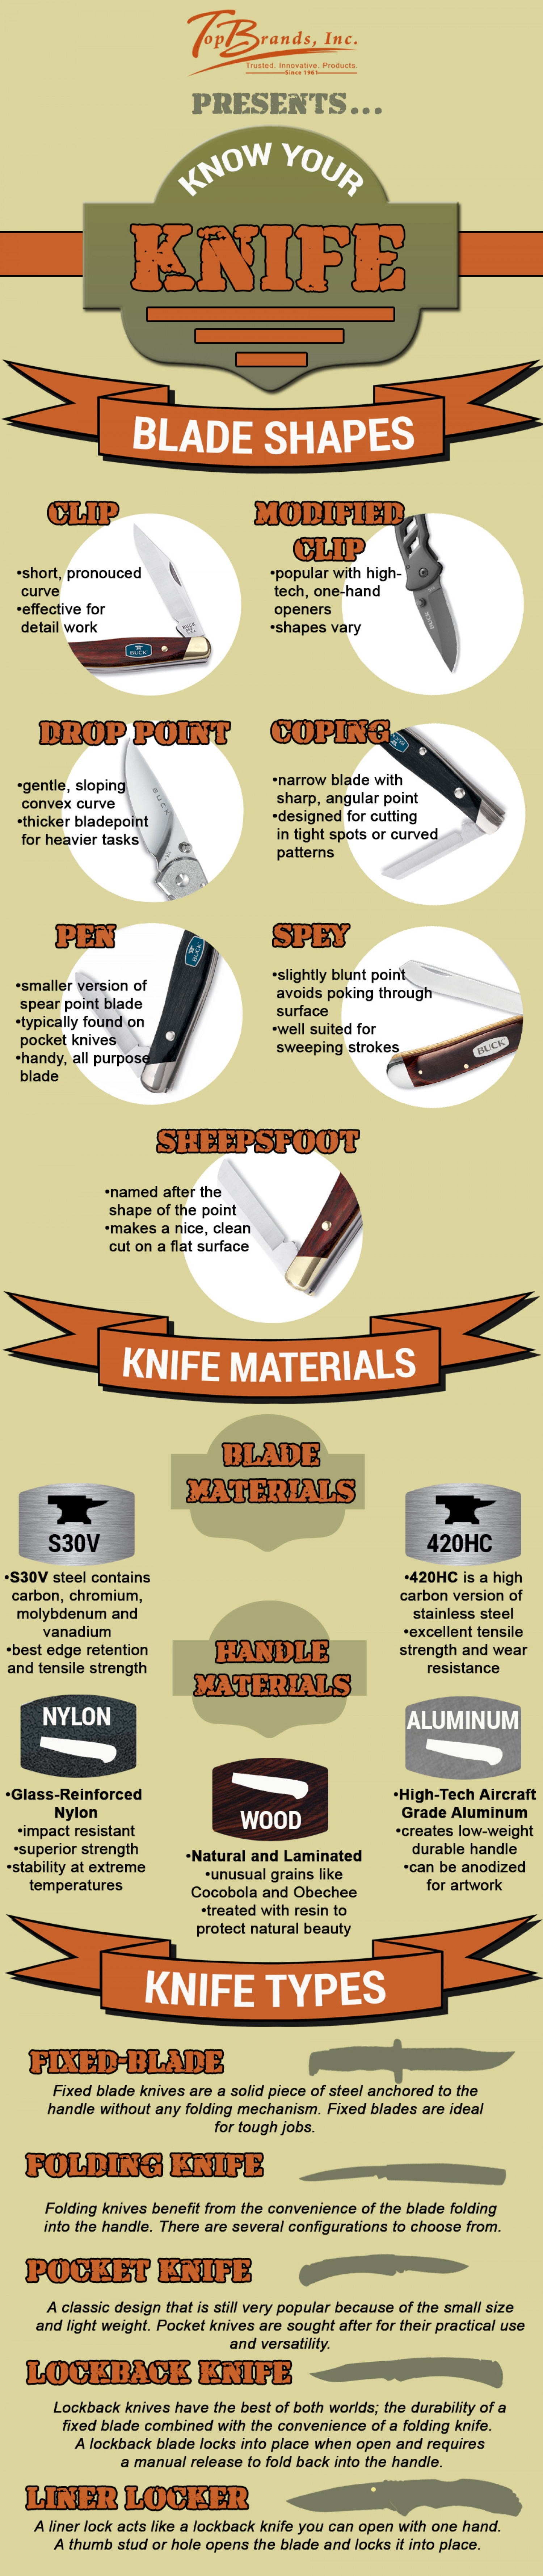 Know Your Knife Infographic